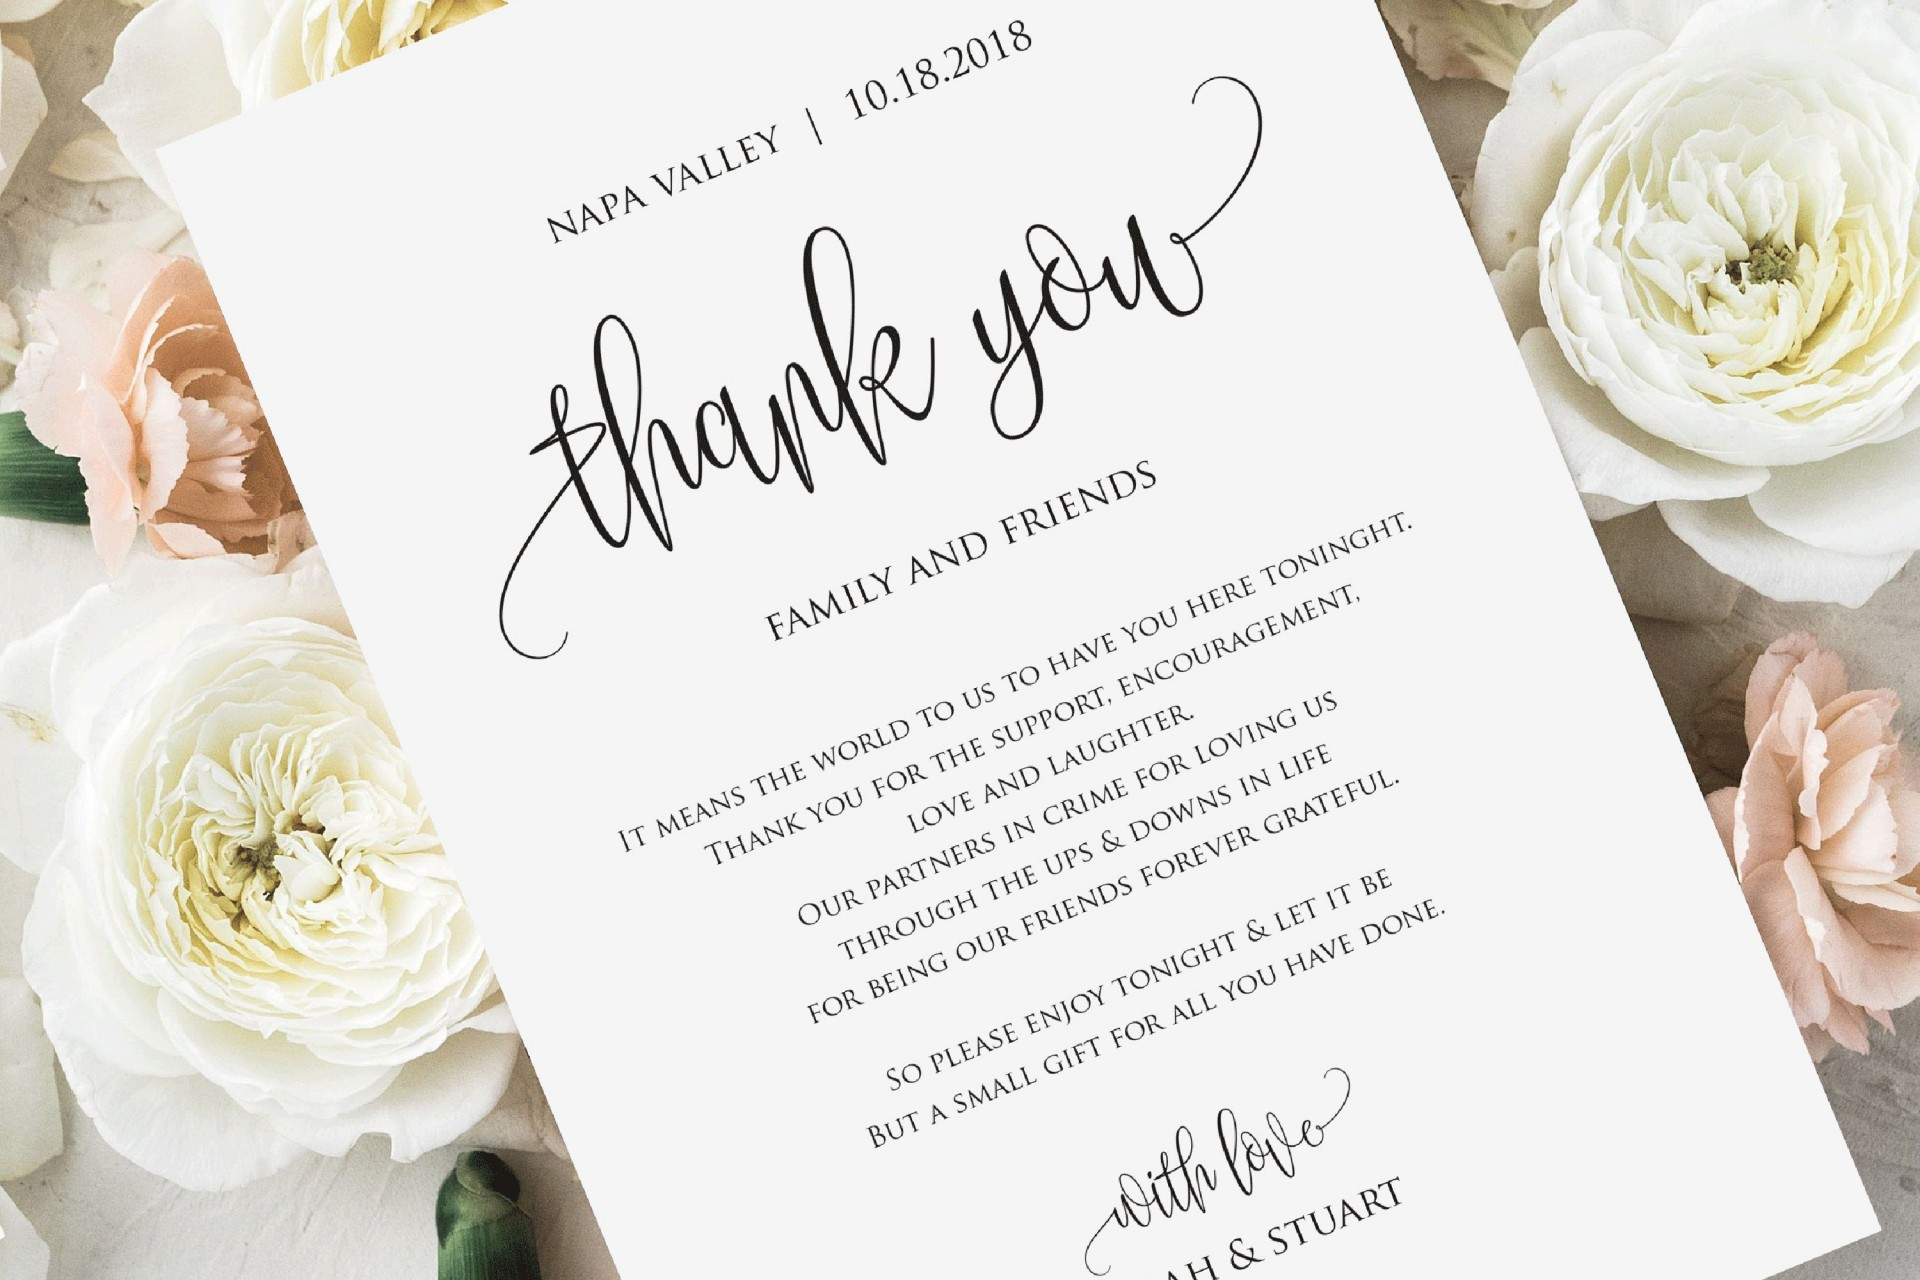 001 Dreaded Wedding Thank You Note Template Photo  Templates Shower Card Etsy Bridal Format1920